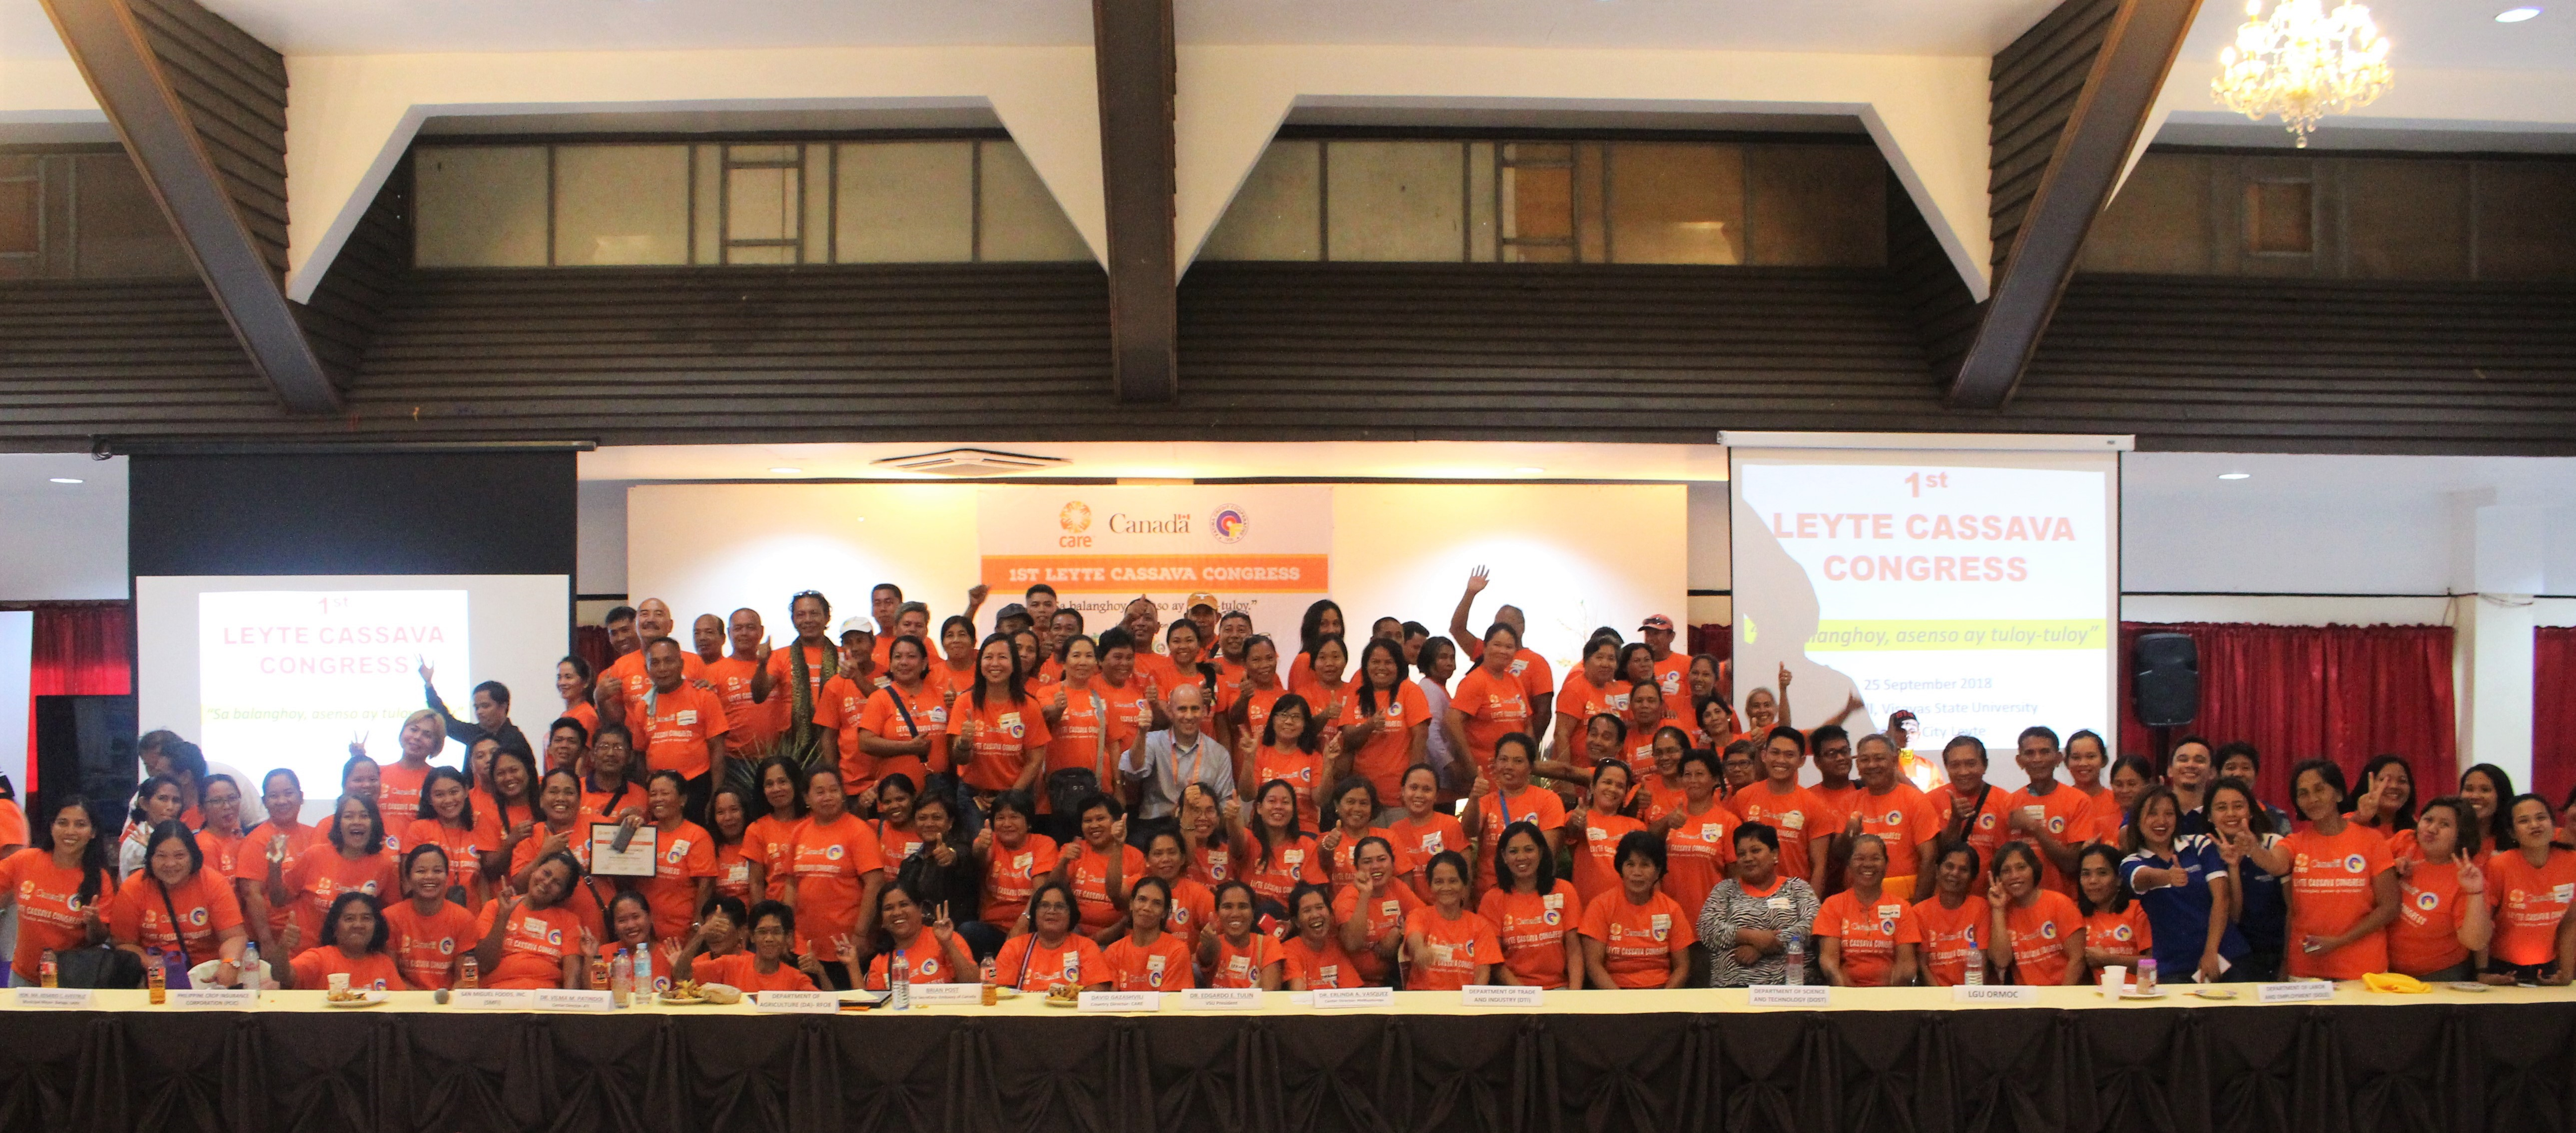 CARE hosts 1st Leyte Cassava Congress, gathers more support for farmers